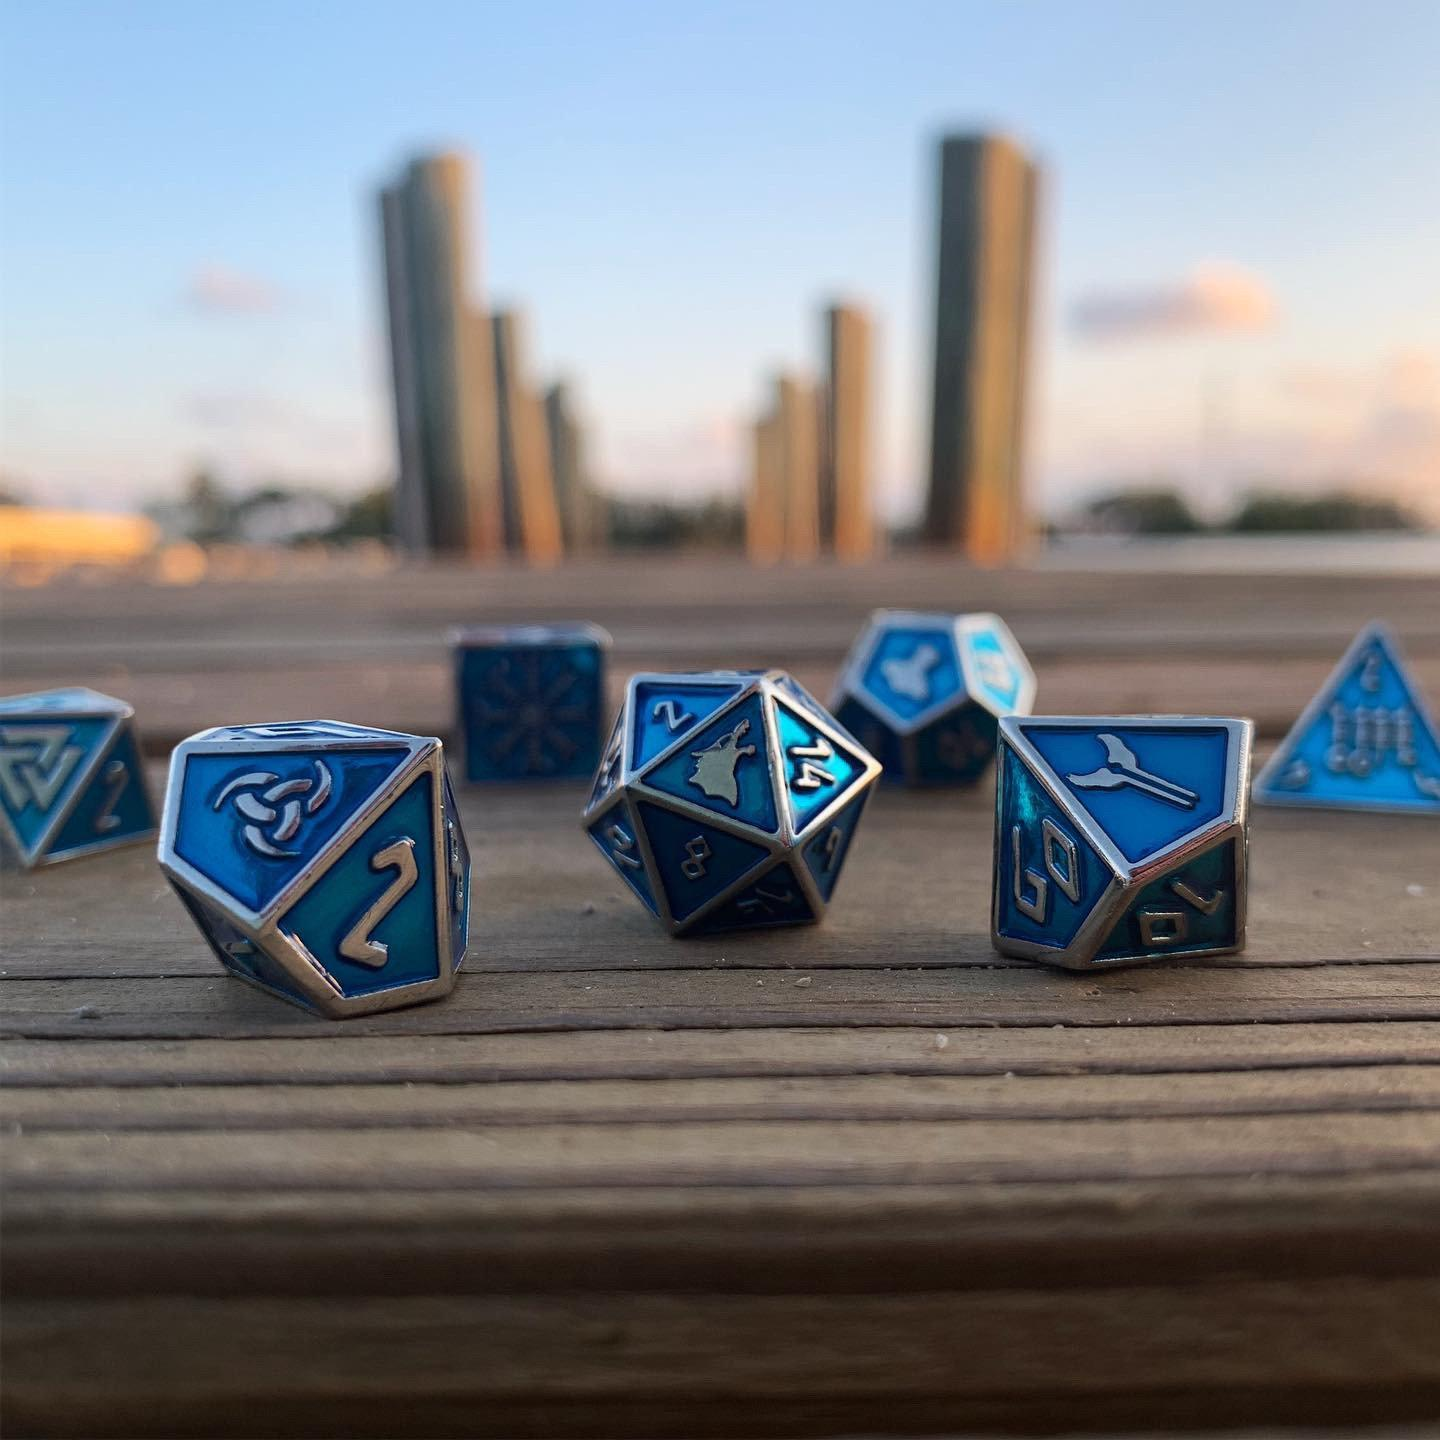 Vorpal Blade Norse Themed Metal Dice Set Norse Foundry Whether you're a dice collector or a casual gamer, this is the place for dice! norse foundry